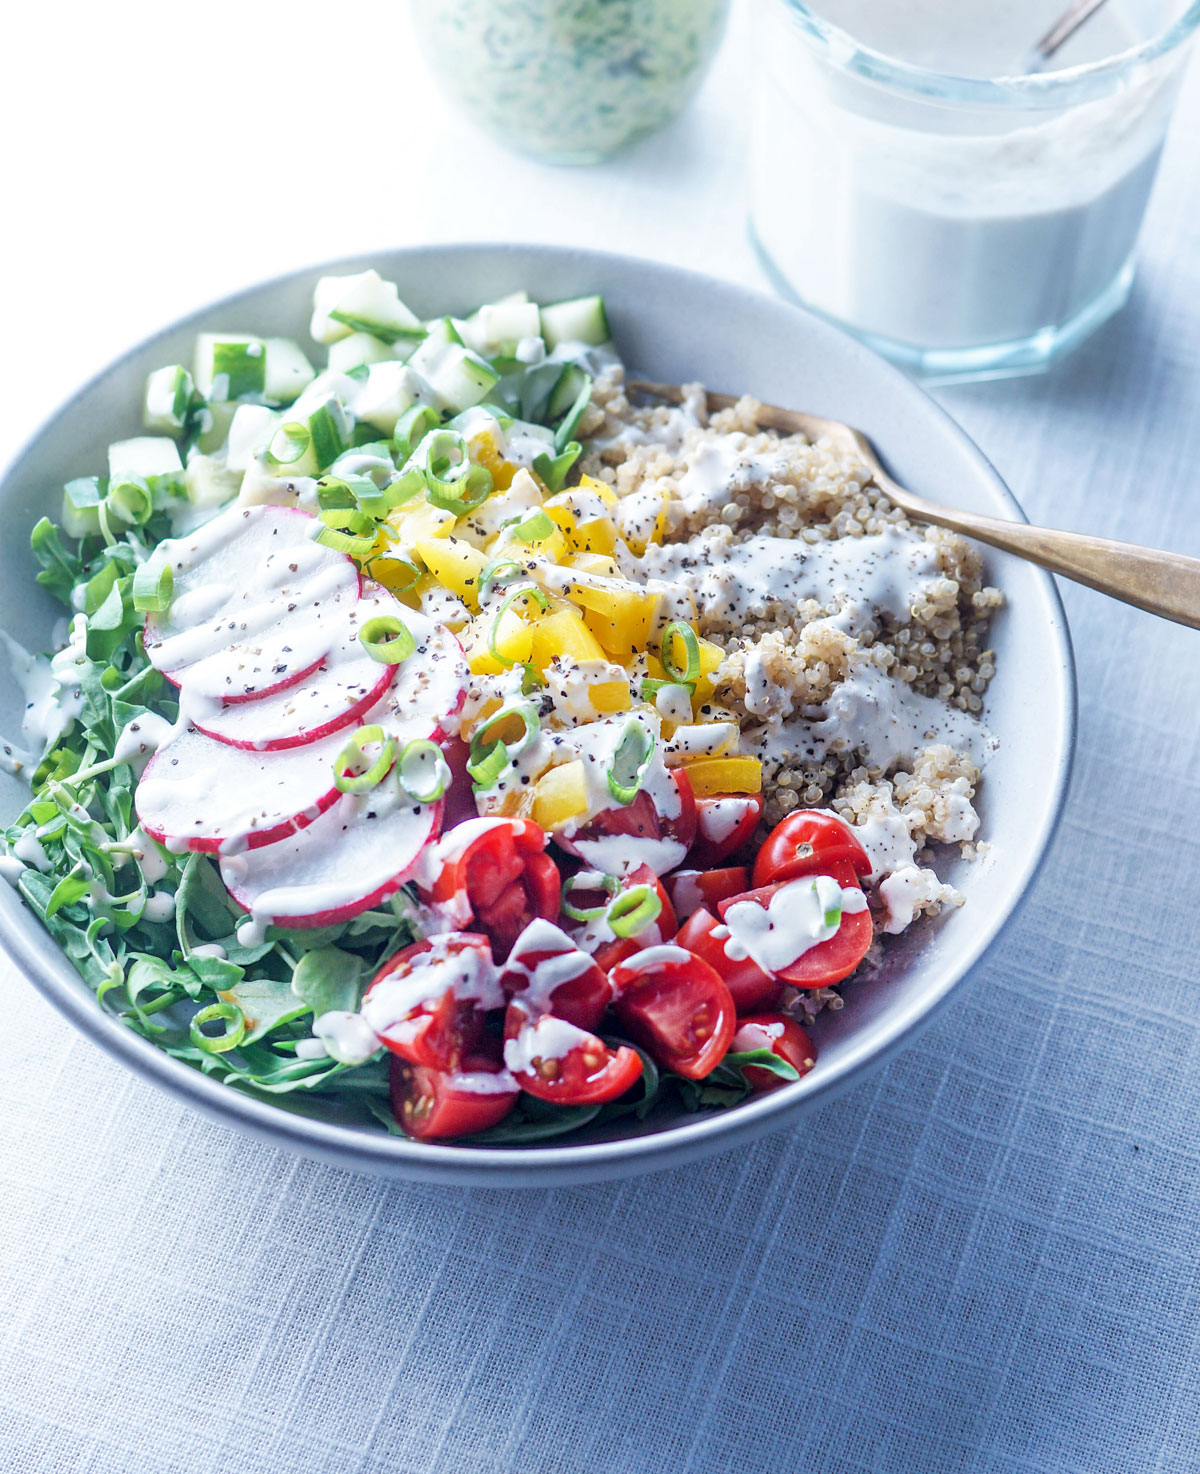 Make Ahead Vegan Lunch Bowls